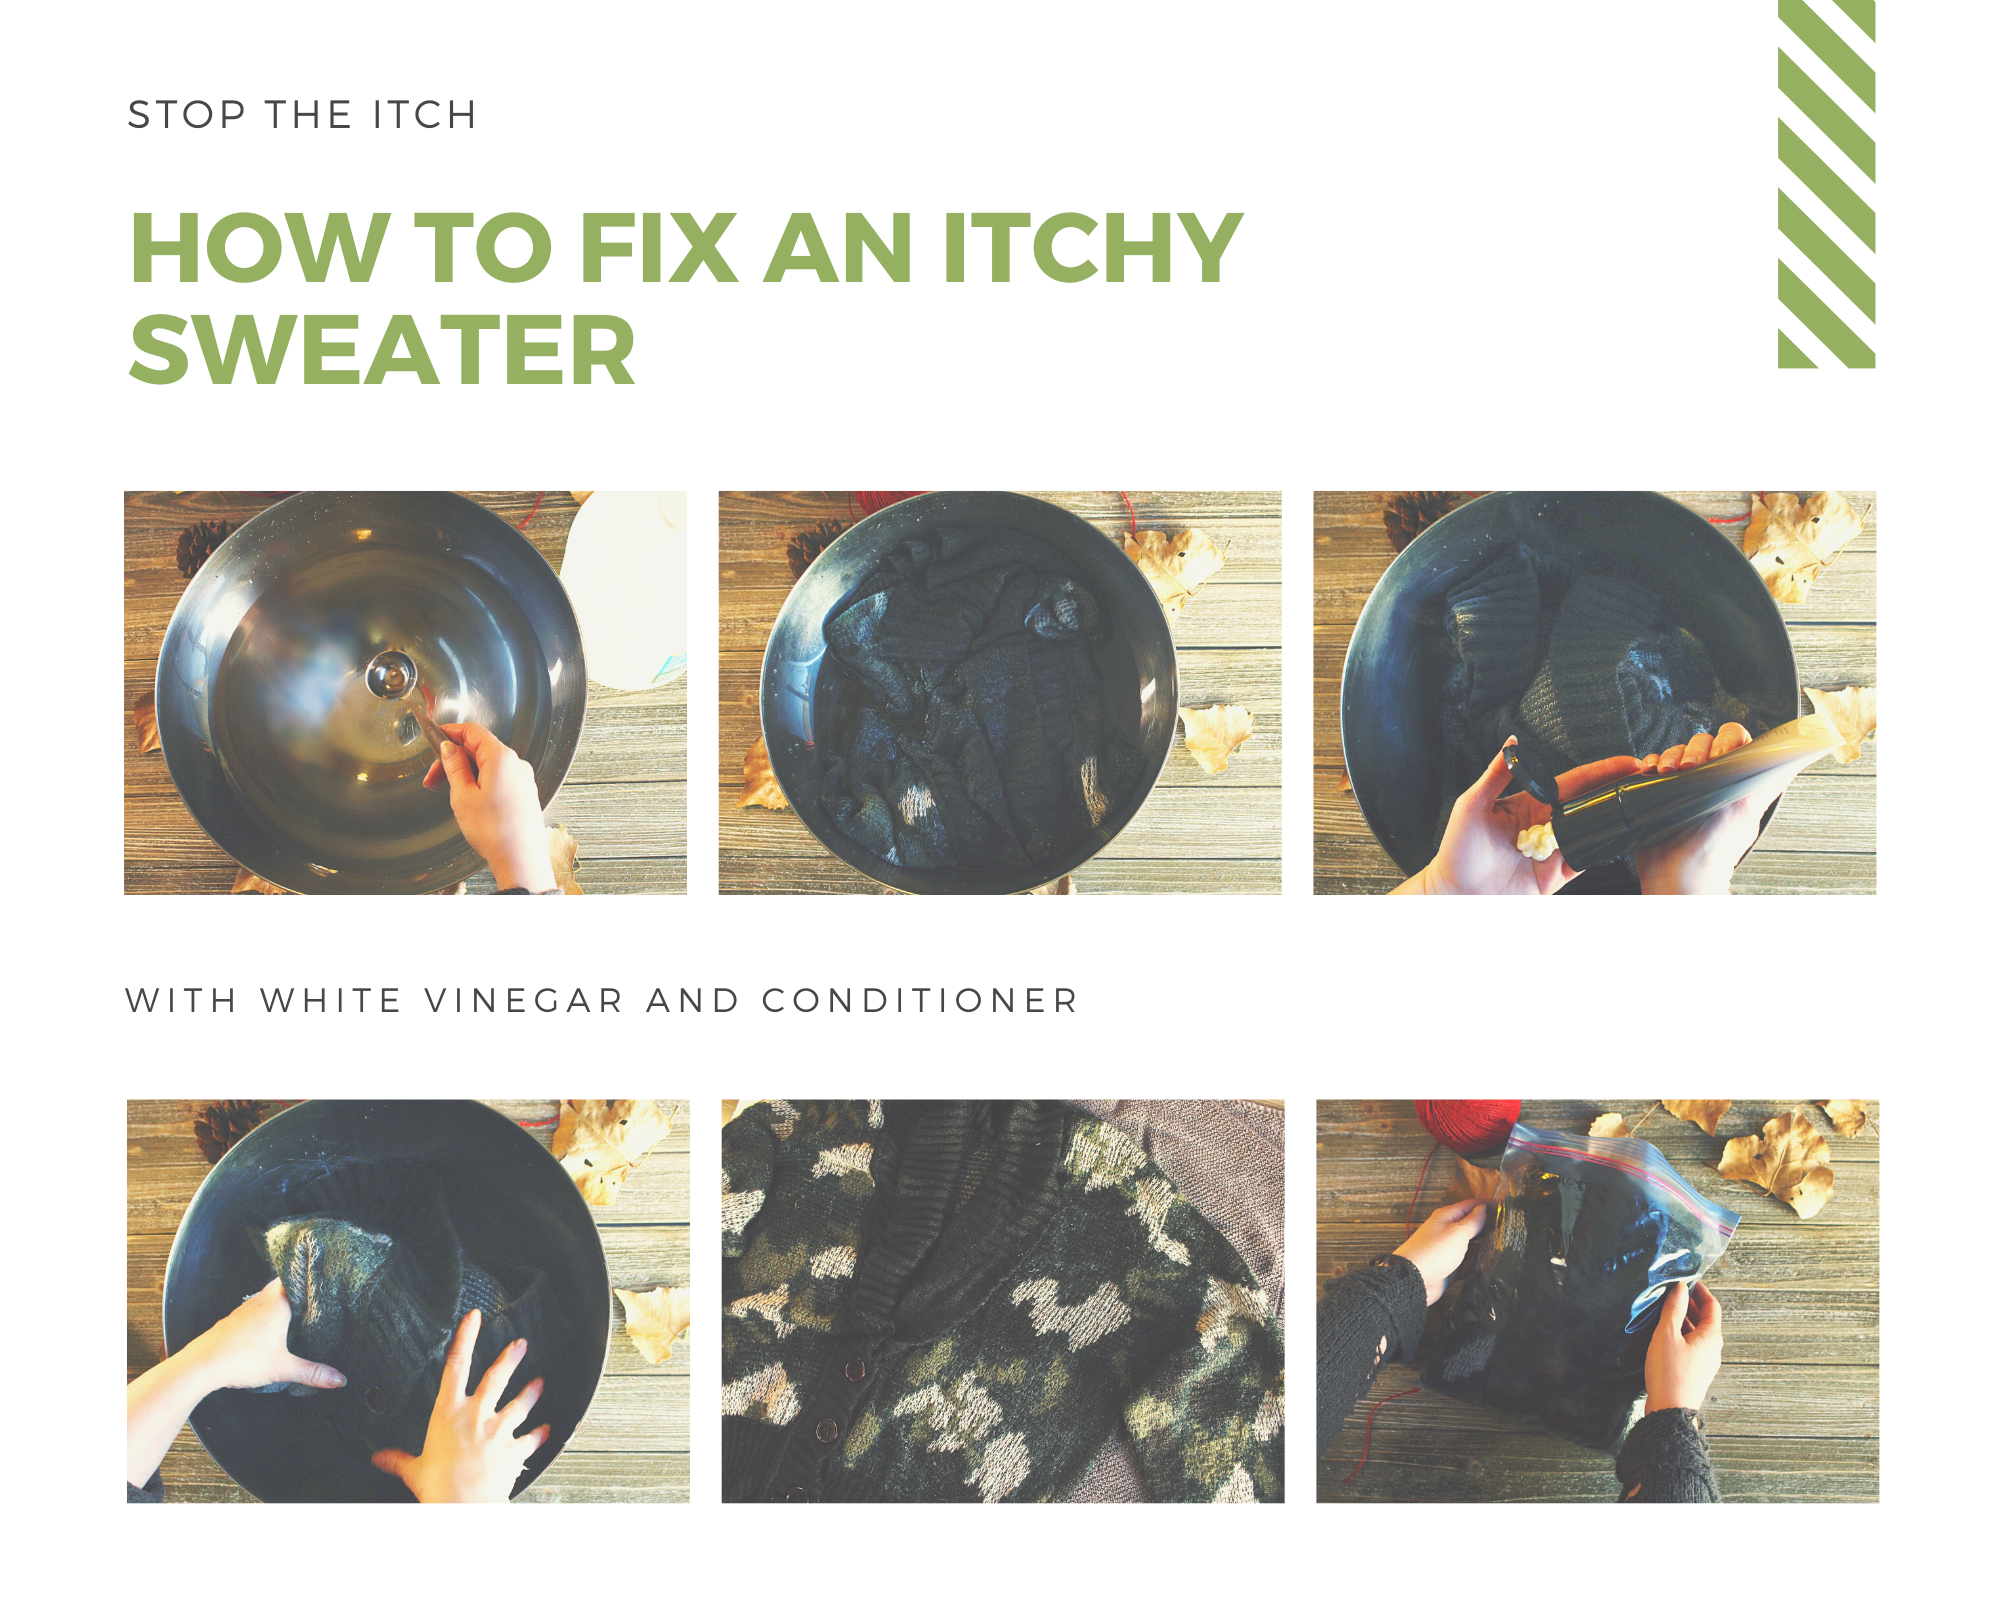 How to fix an itchy sweater